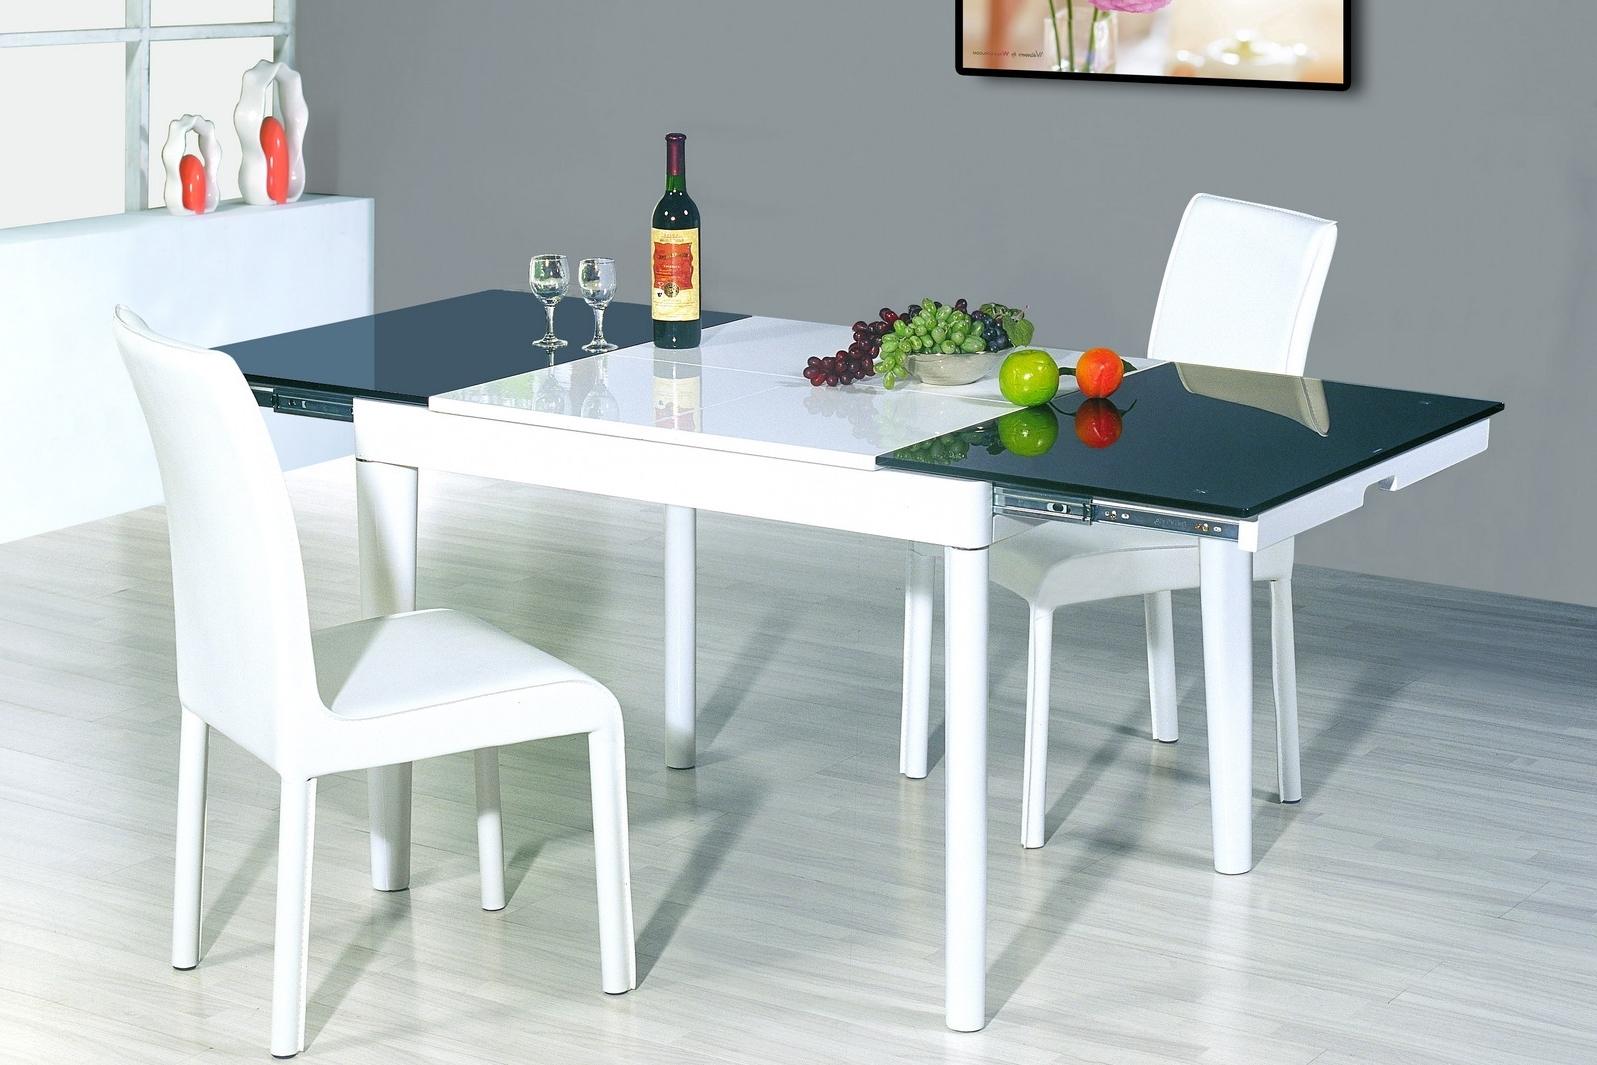 Fancy Futuristic Modern Kitchen Table Set With Expandable Top And Pertaining To Recent White Square Extending Dining Tables (View 4 of 25)